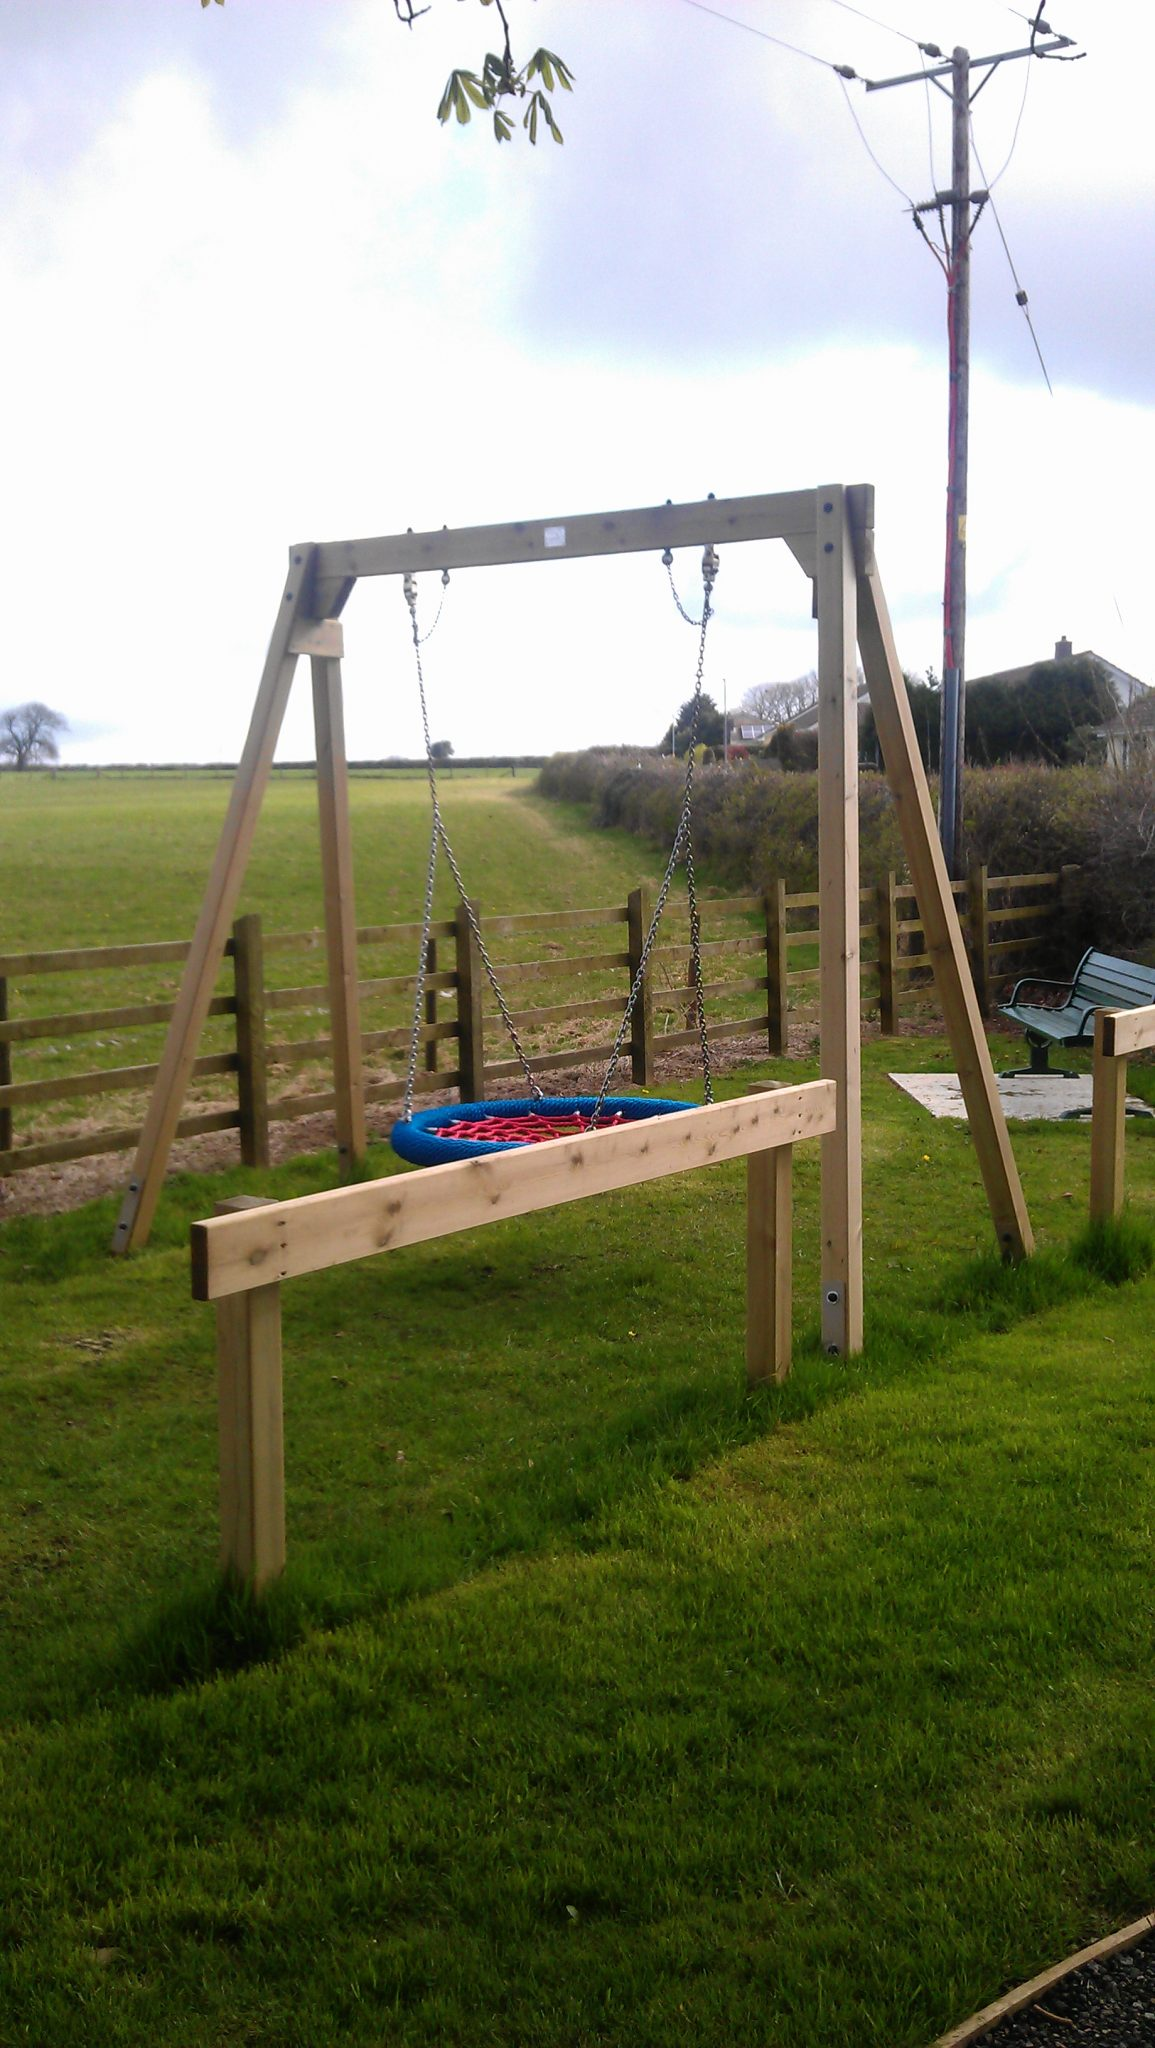 New play equipment